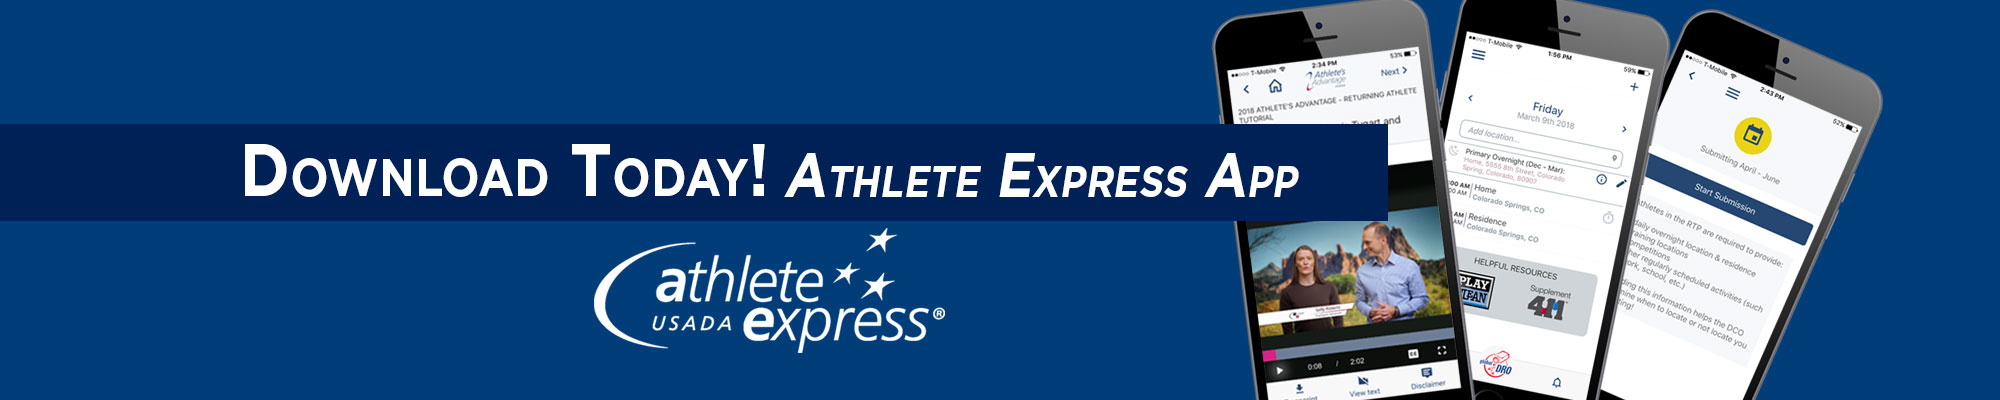 smart phones displaying the Athlete express app on blue background